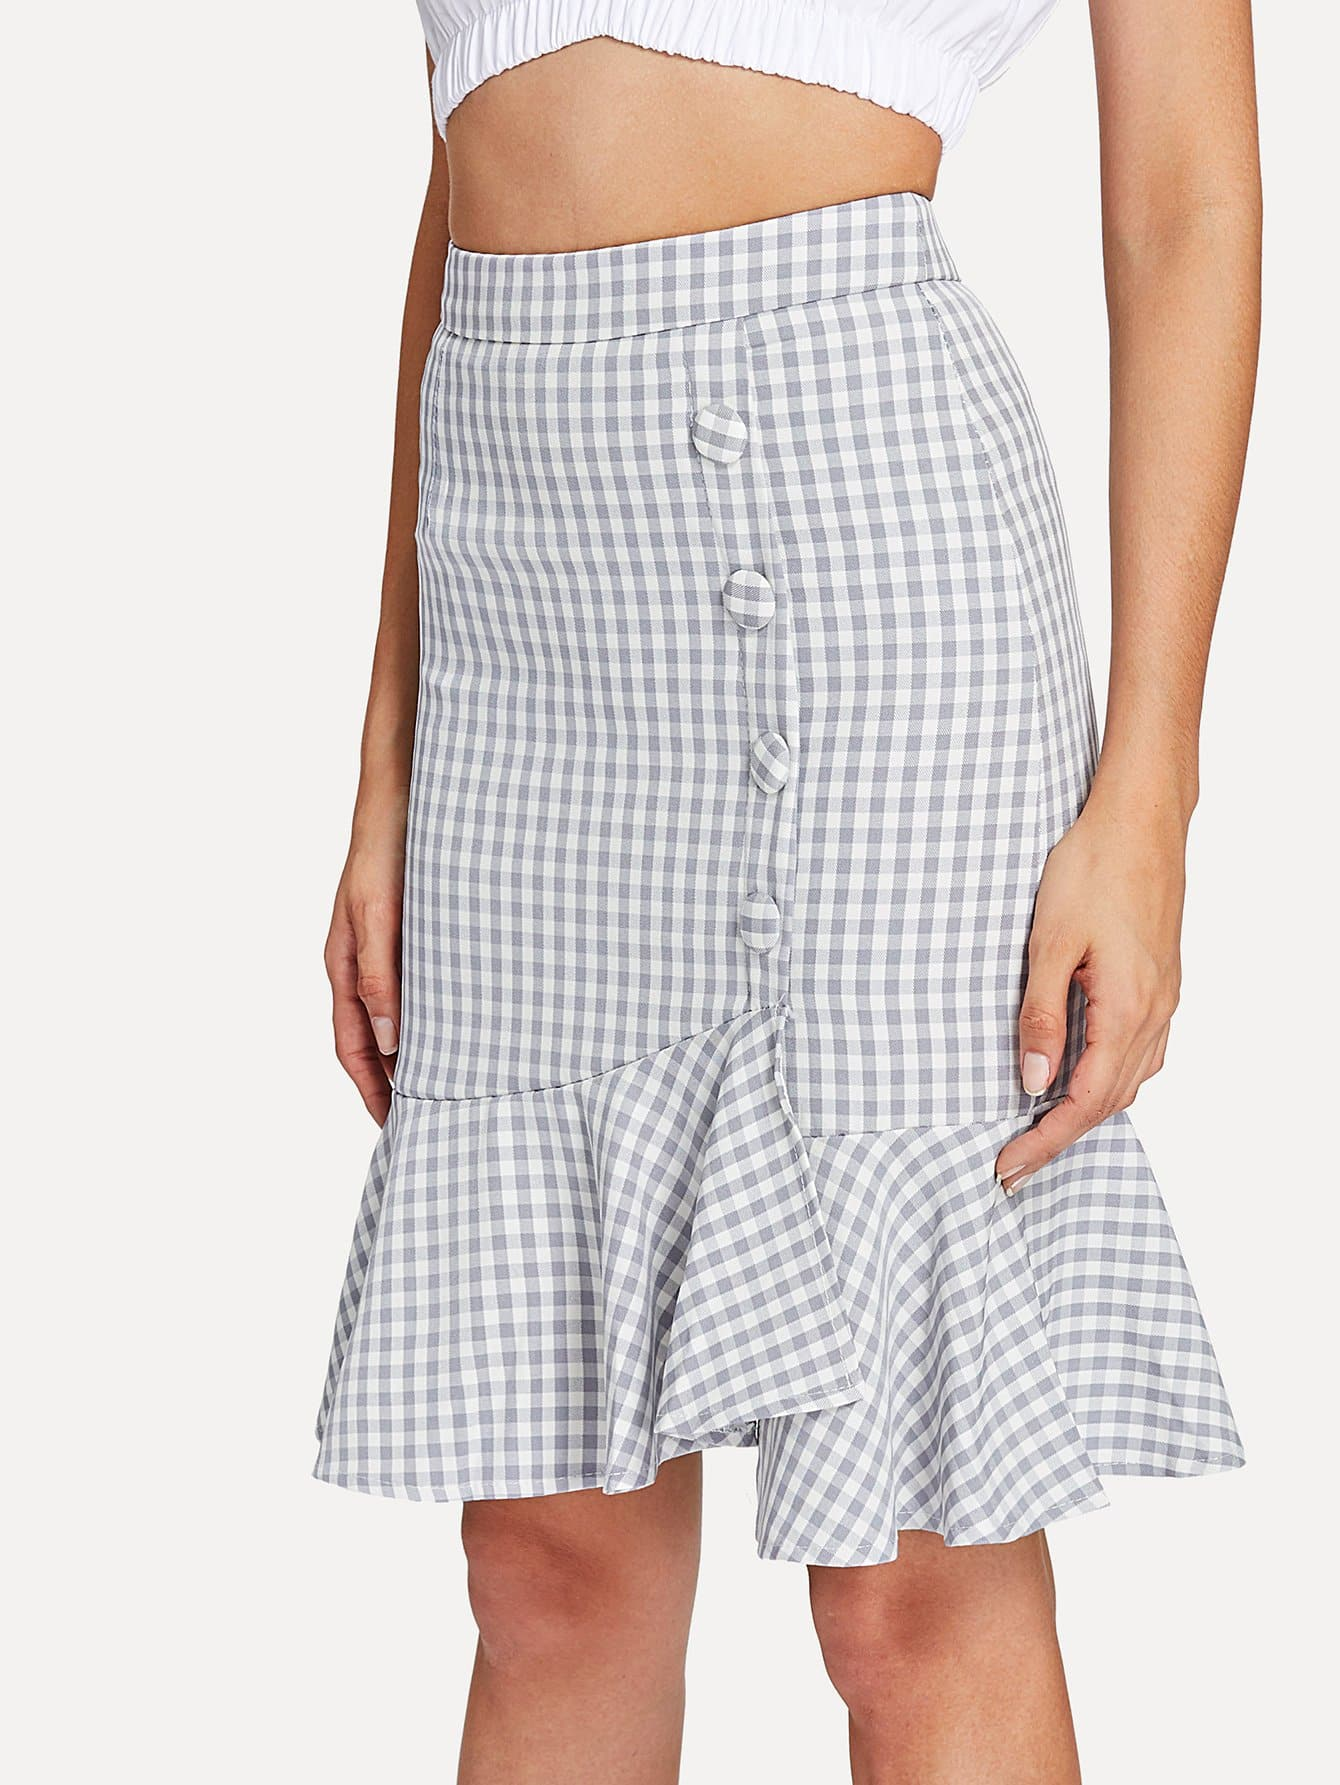 Ruffle Hem Button Detail Gingham Skirt ruffle hem button detail gingham skirt